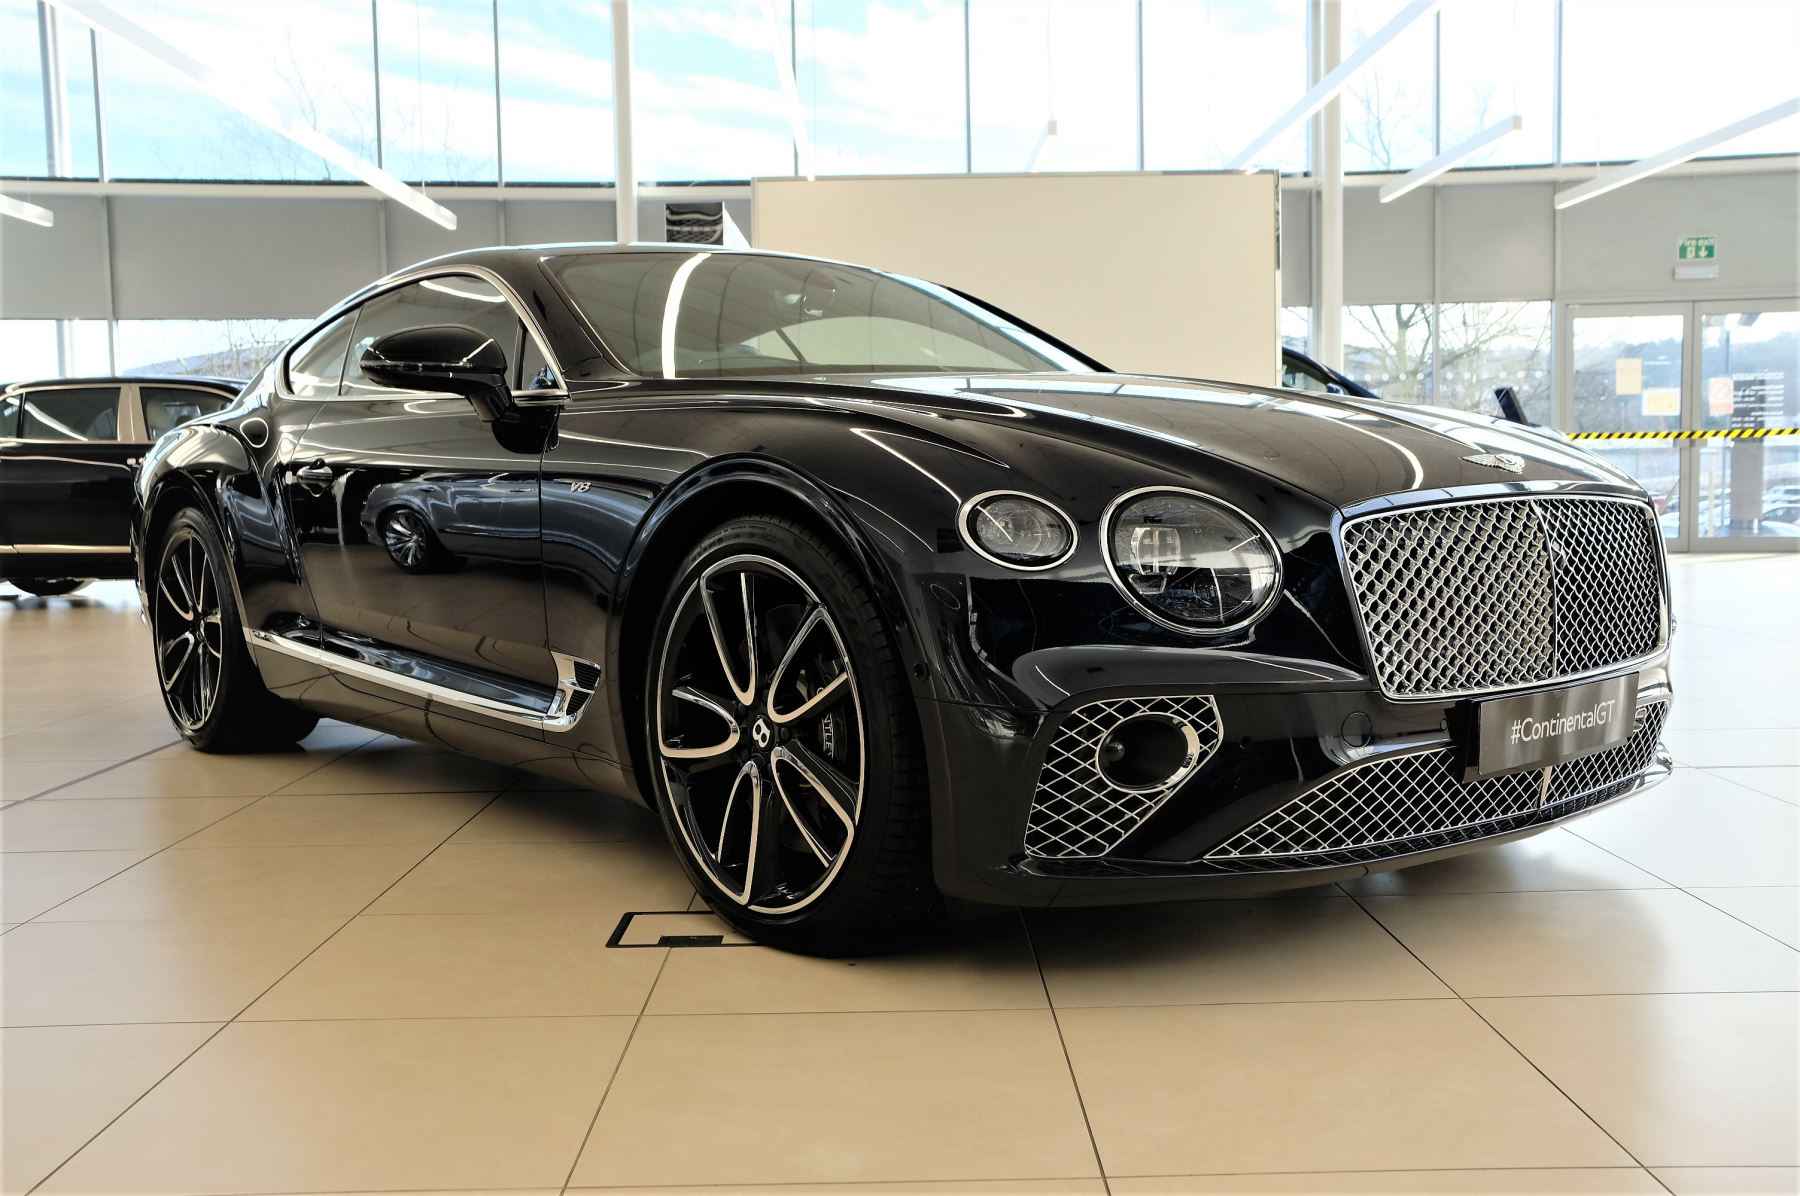 Bentley Continental GT 0.0 4.0 V8 Mulliner Edition Auto (Tour Spec)